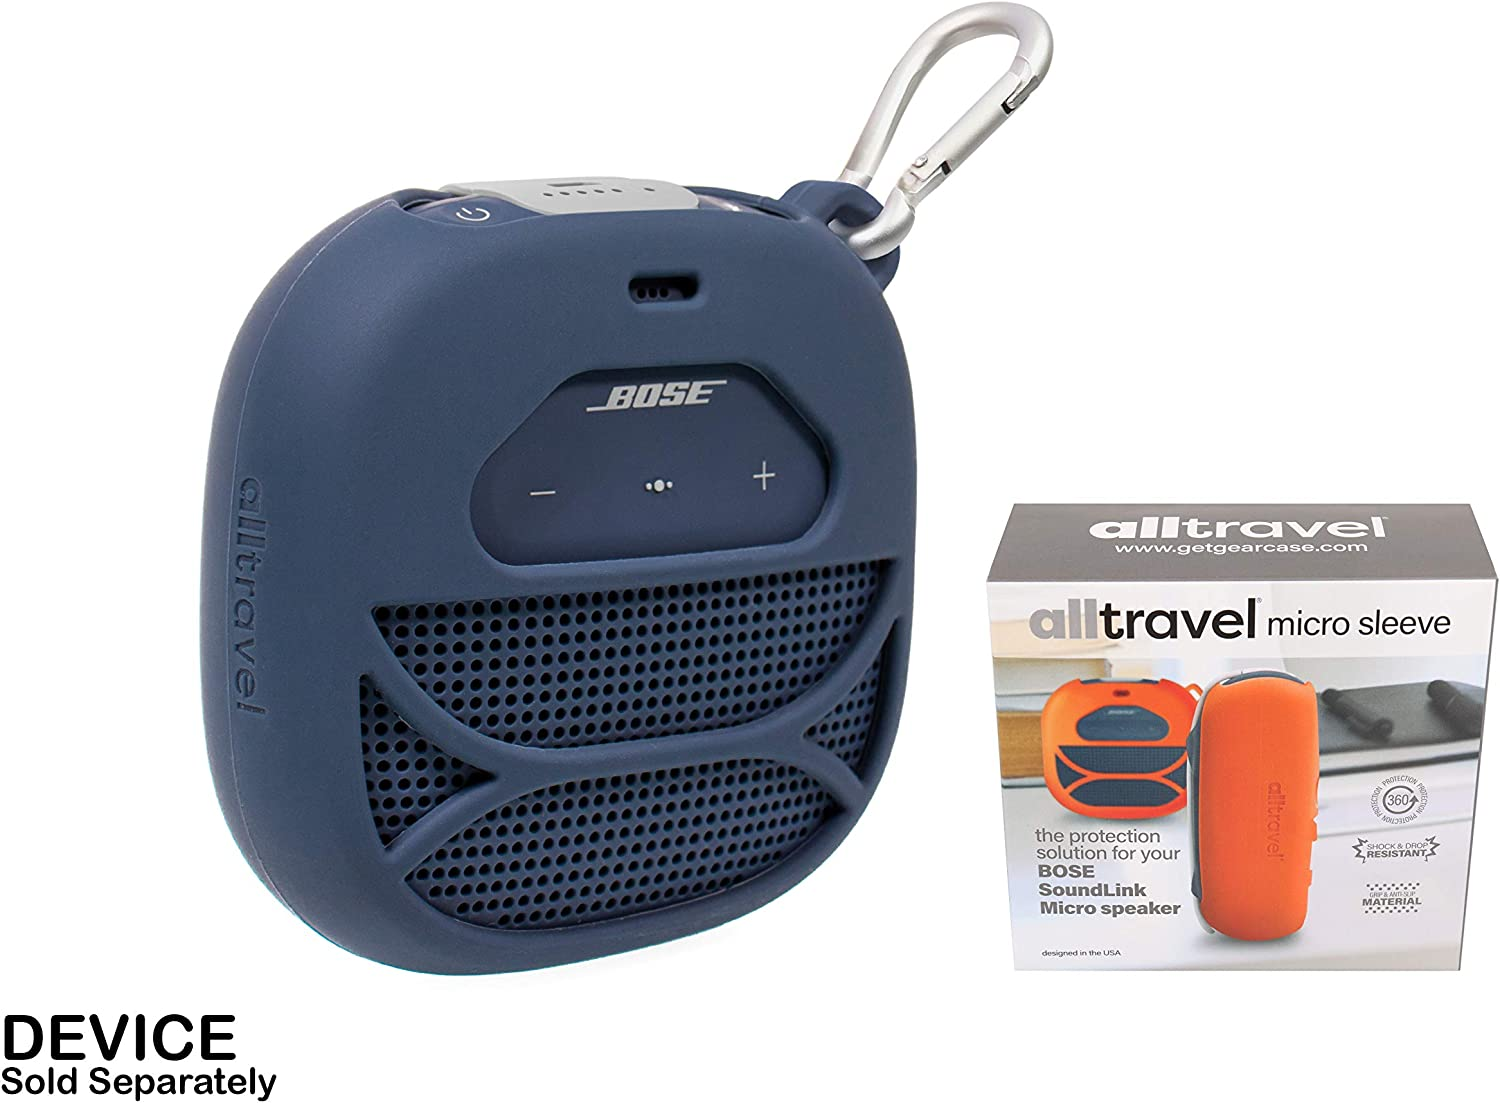 Shake and Drop Customized Silicon Skin for Bose SoundLink Micro Free Carabiner for Easy Carrying Full Protection Cover from Shock Portable Outdoor Speaker by alltravel